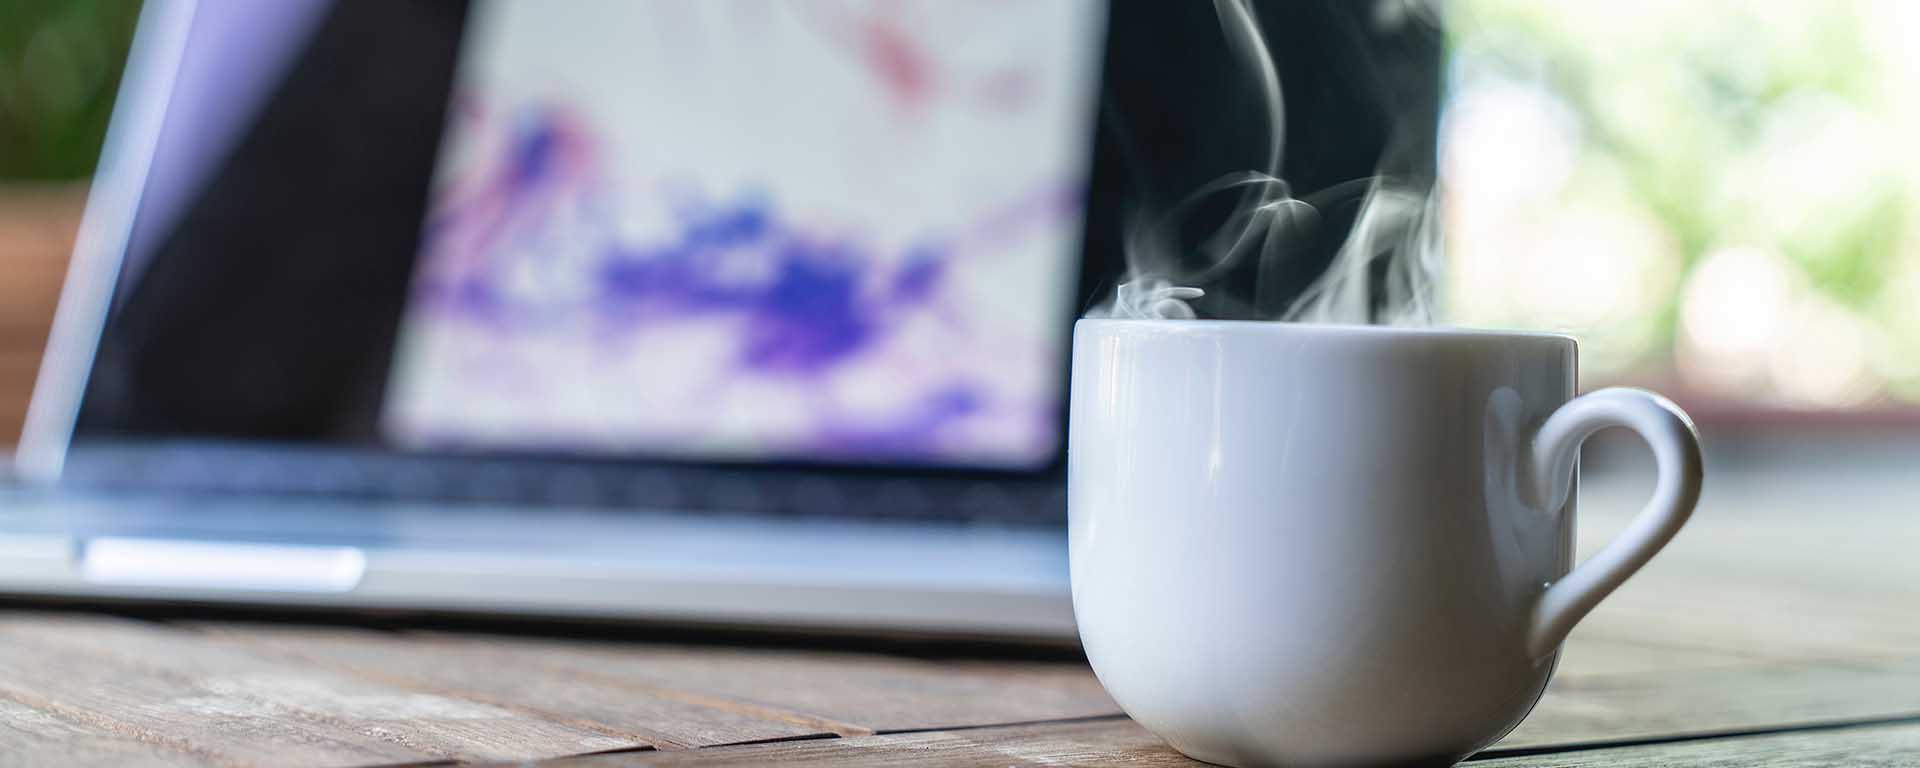 White mug with steam. A laptop in the background